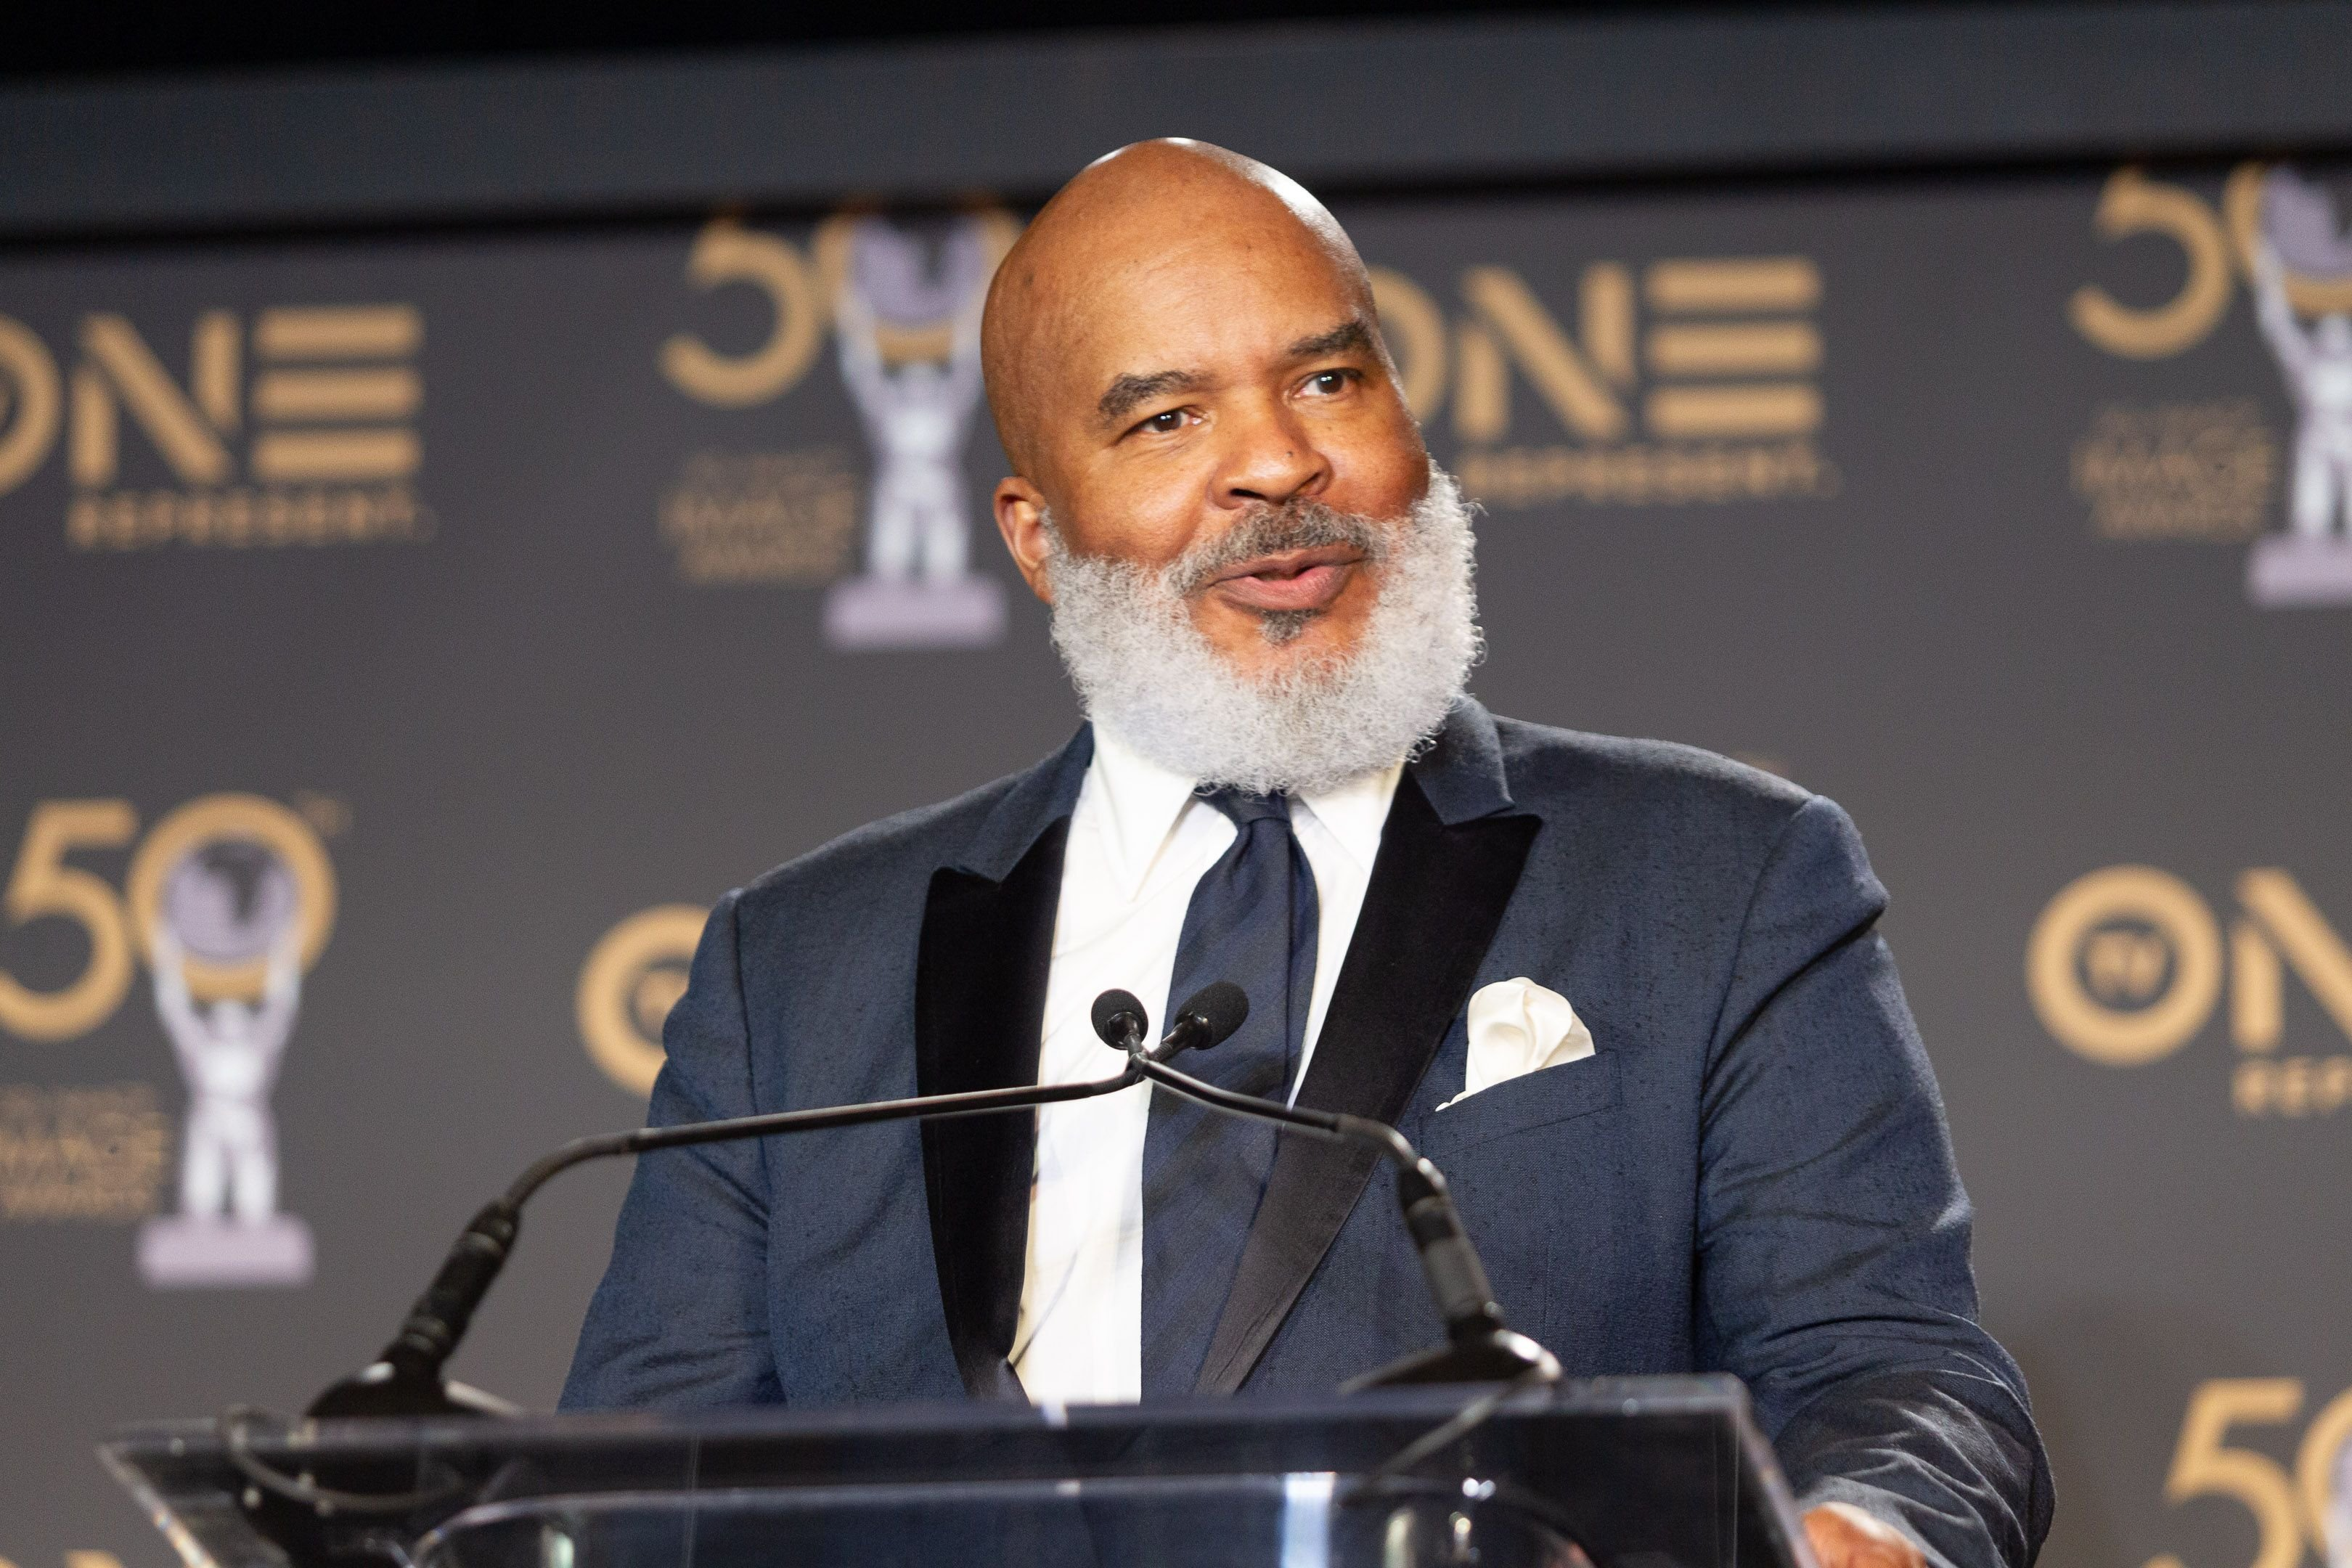 David Alan Grier attends the 50th NAACP Image Awards at Dolby Theatre on March 30, 2019 | Photo: Getty Images